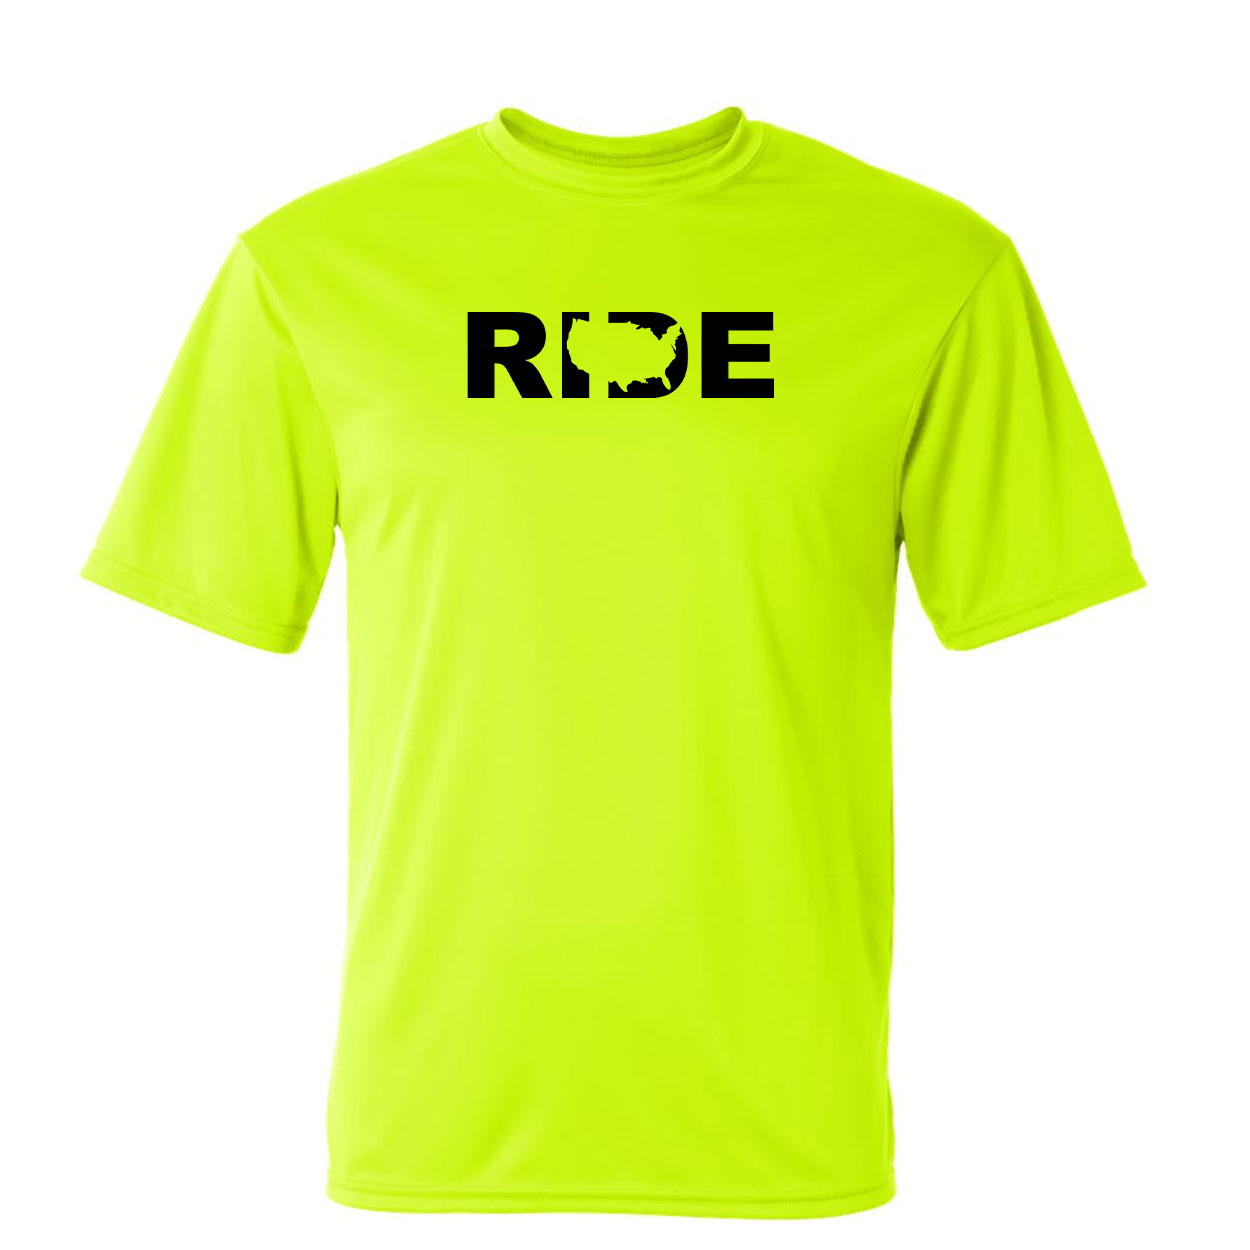 Ride United States Classic Unisex Performance T-Shirt High Visibility Safety Yellow (Black Logo)